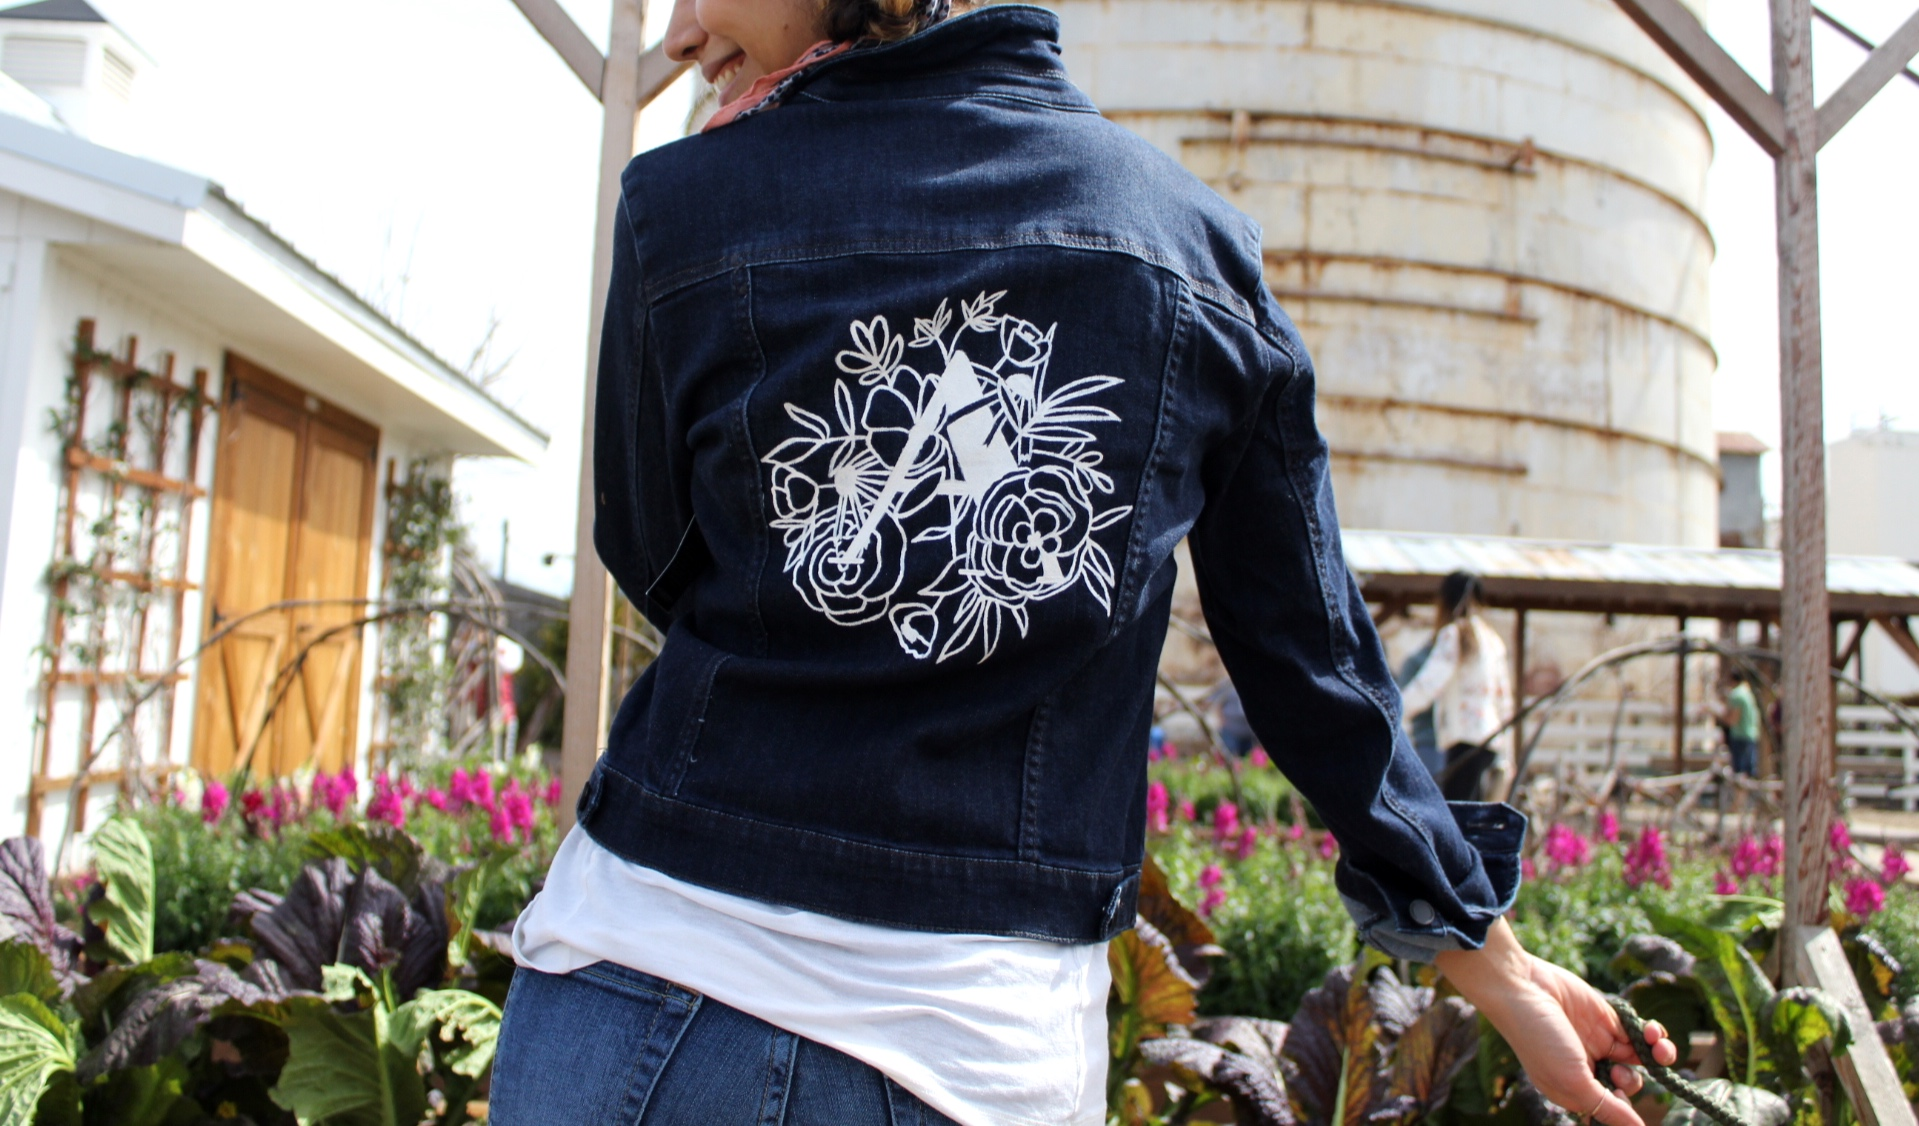 custom painted denim jacket  @Magnoliamarket